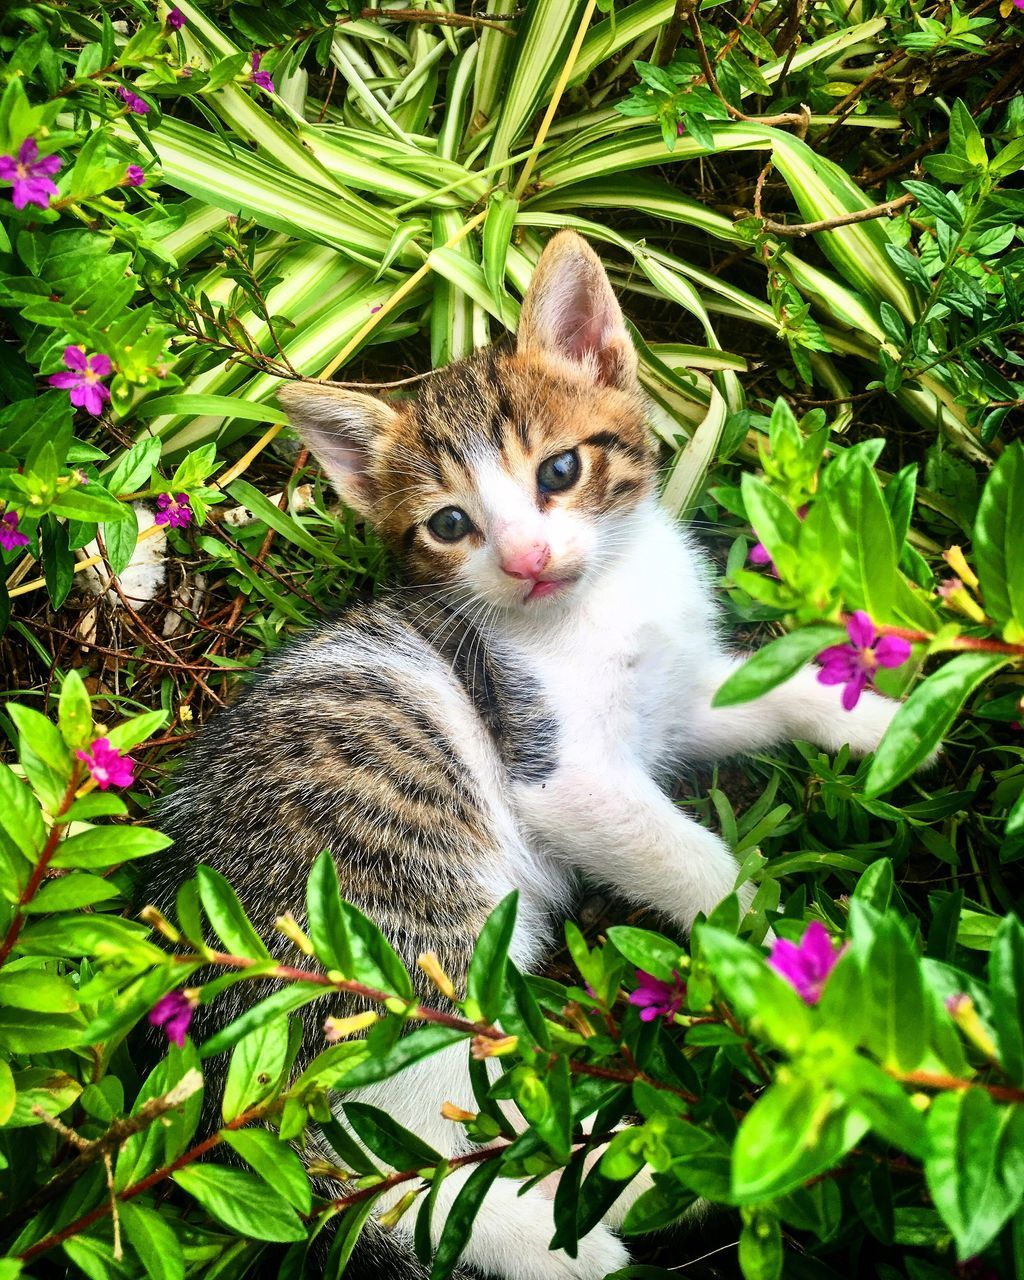 domestic cat, animal themes, pets, cat, feline, one animal, domestic animals, day, mammal, green color, no people, outdoors, plant, growth, flower, leaf, looking at camera, nature, grass, portrait